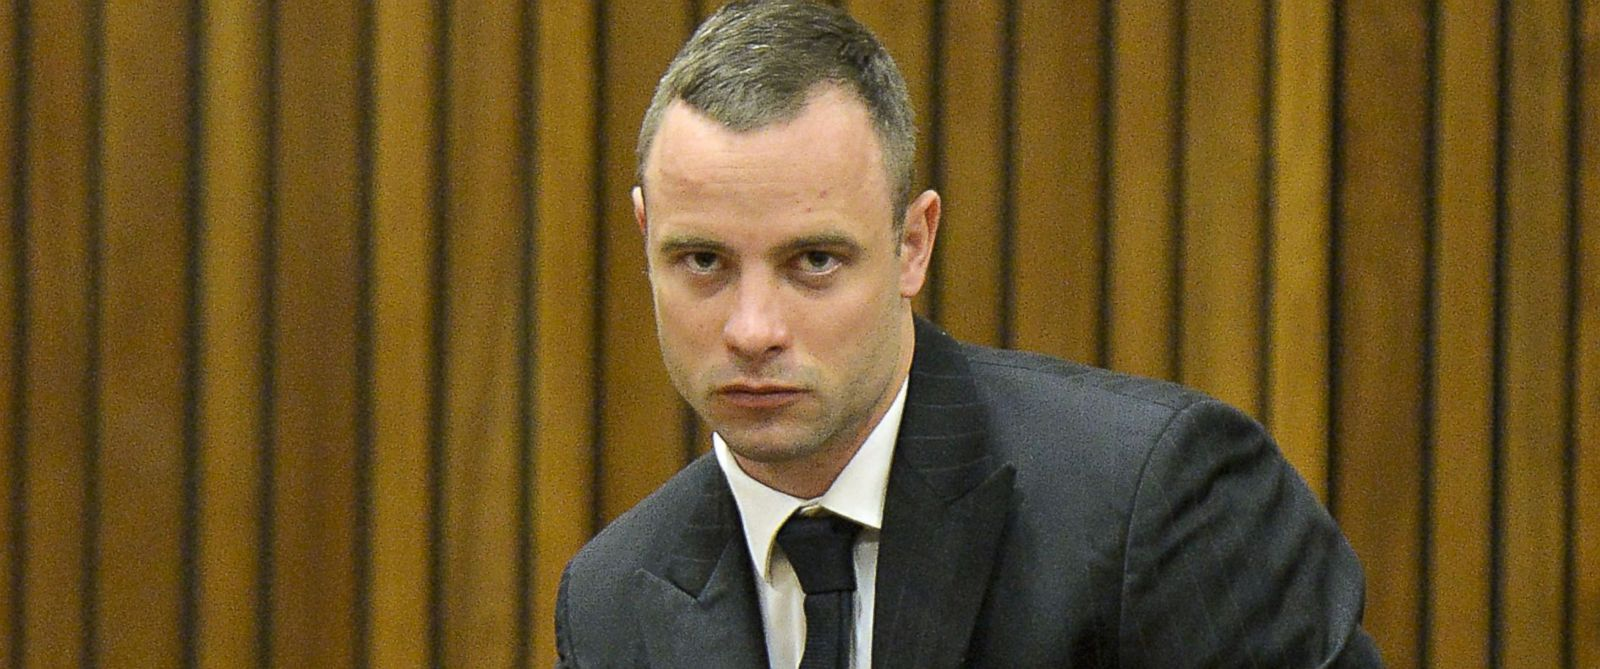 PHOTO: Oscar Pistorius is pictured on May 9, 2014 in Pretoria, South Africa.